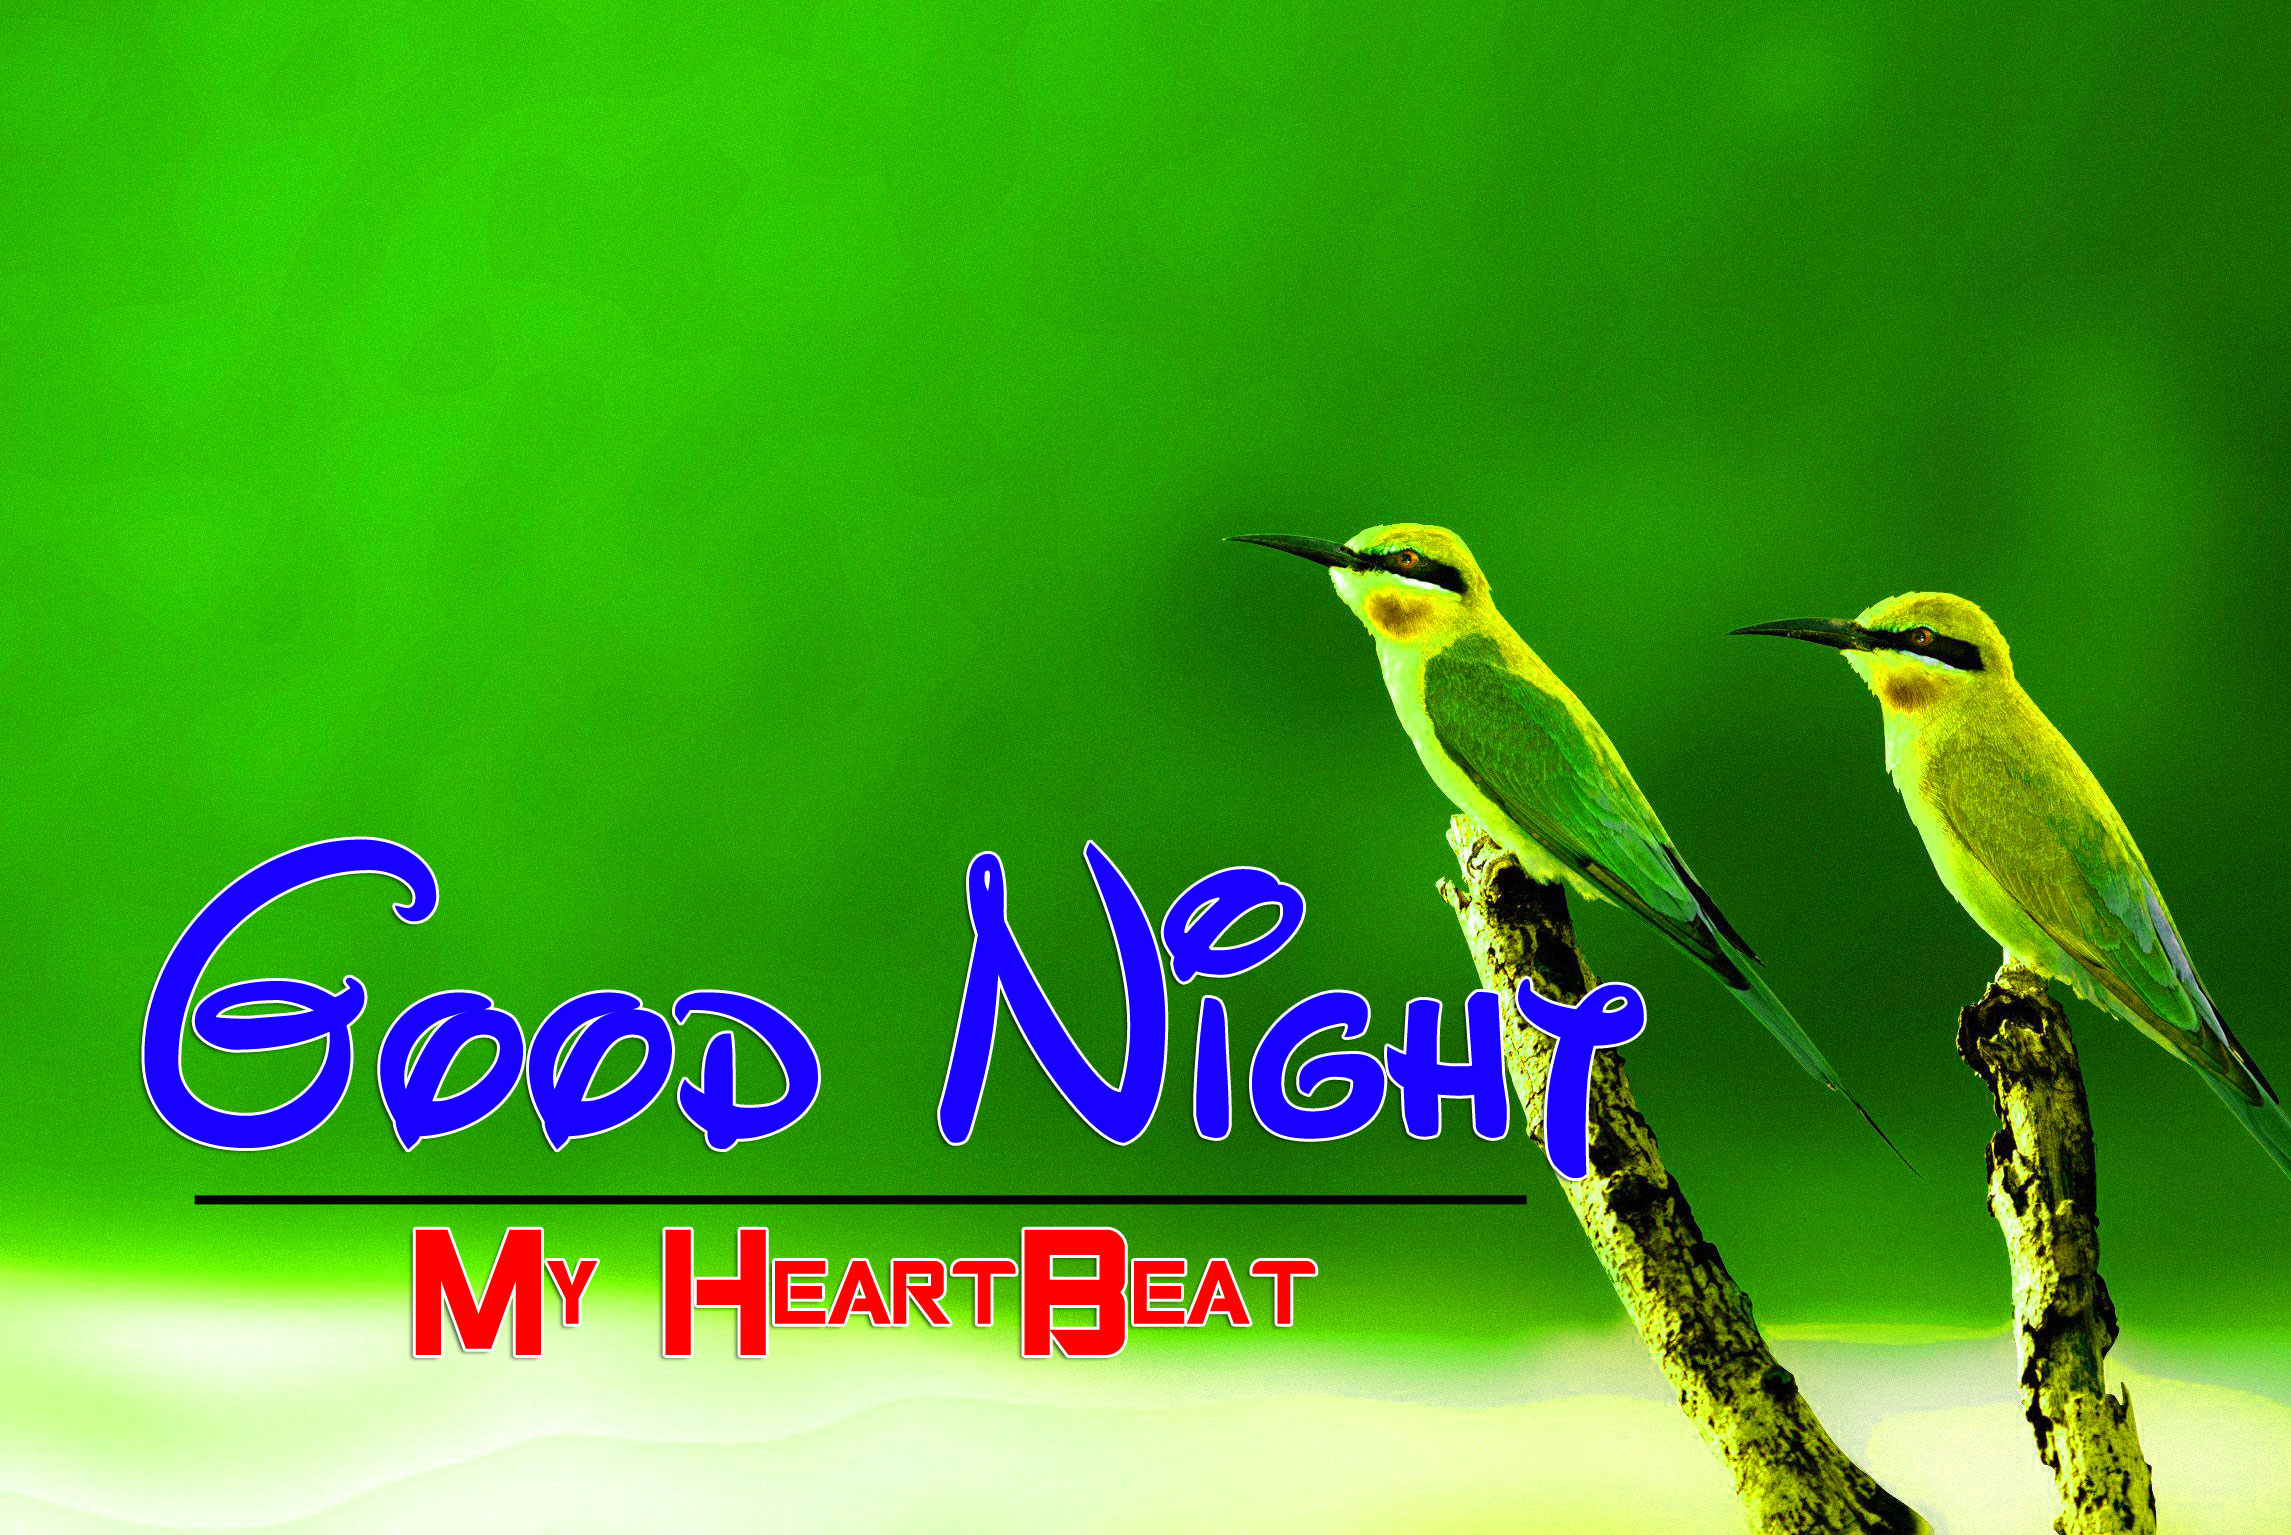 New Good Night Images Wallpaper 2